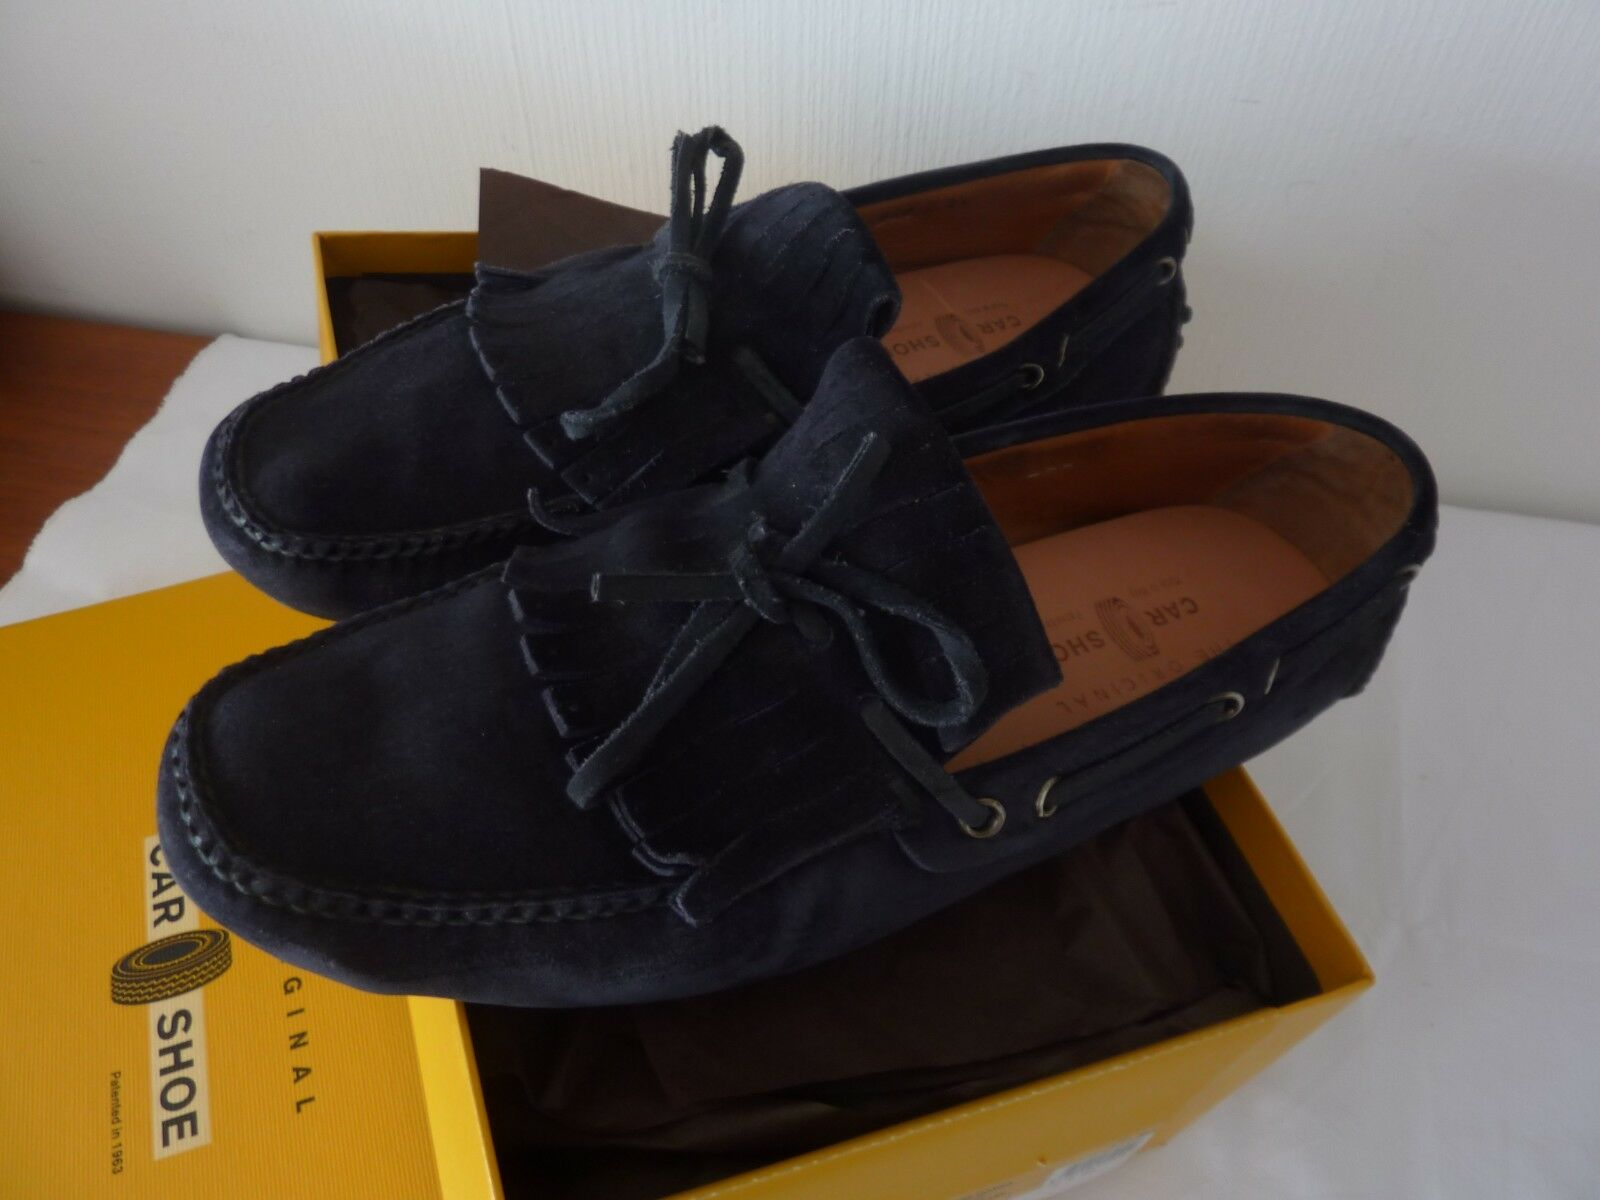 CAR CAR CAR SHOE by PRADA SLIPPER SCHUHE KKD010 BLAUES WILDLEDER  Gr. 8,5-42-43 96926d